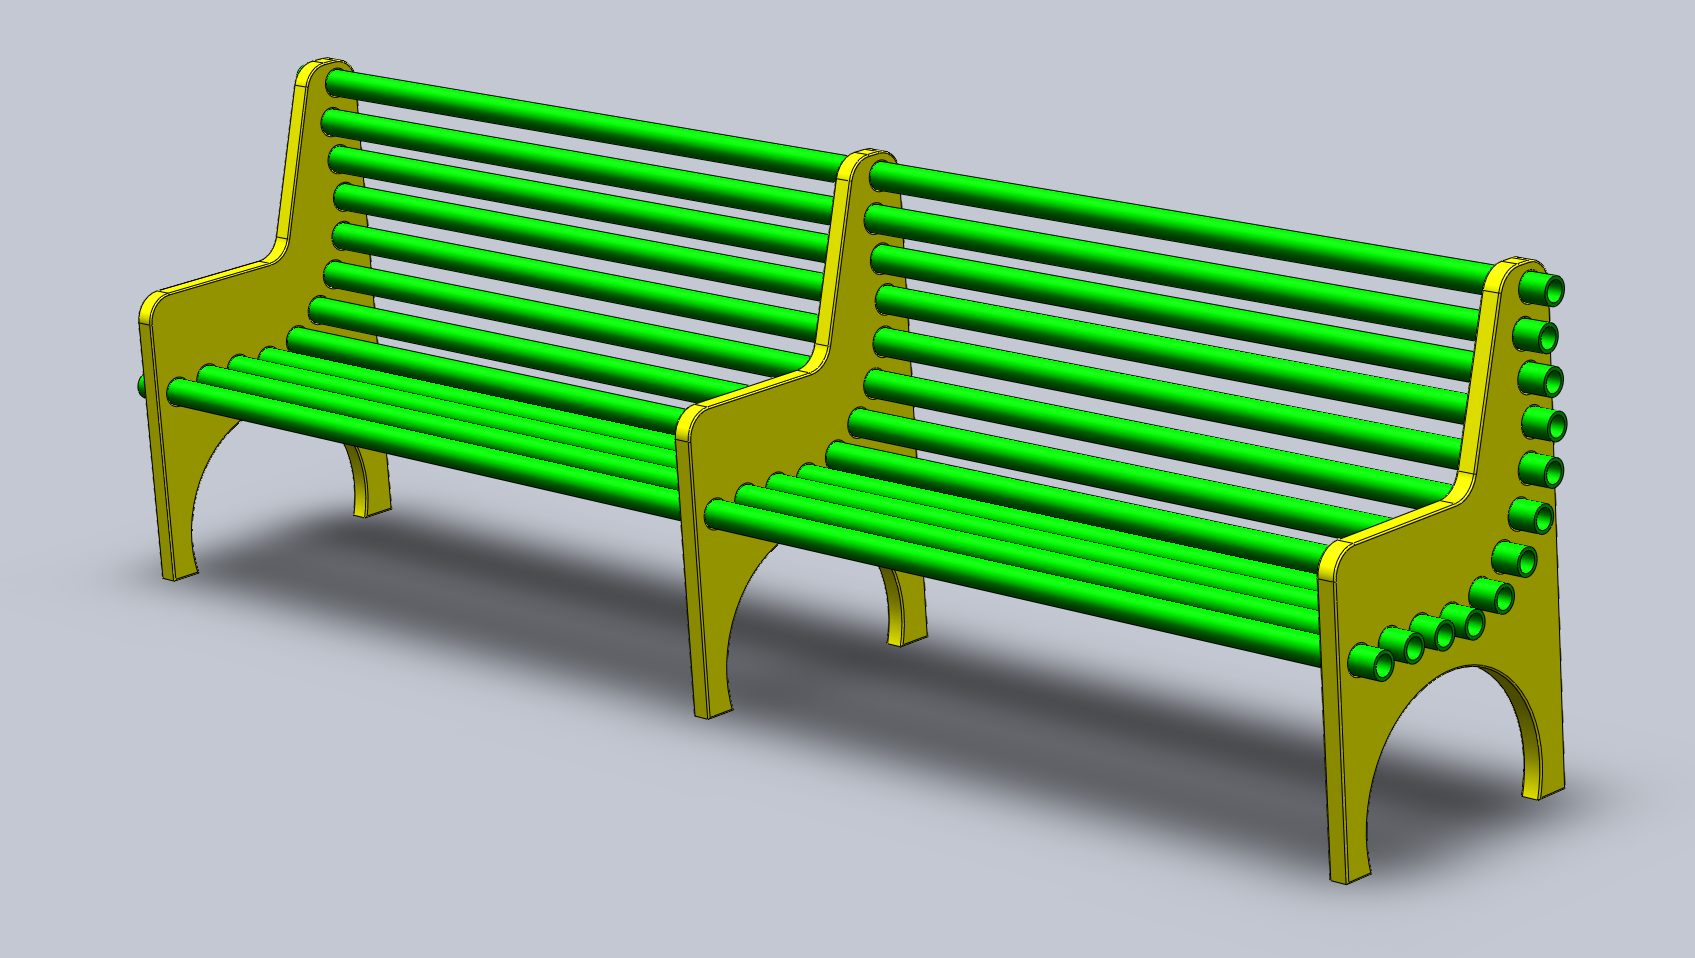 Pvc projects pvc pipe bench the gahooa perspective for Pvc crafts